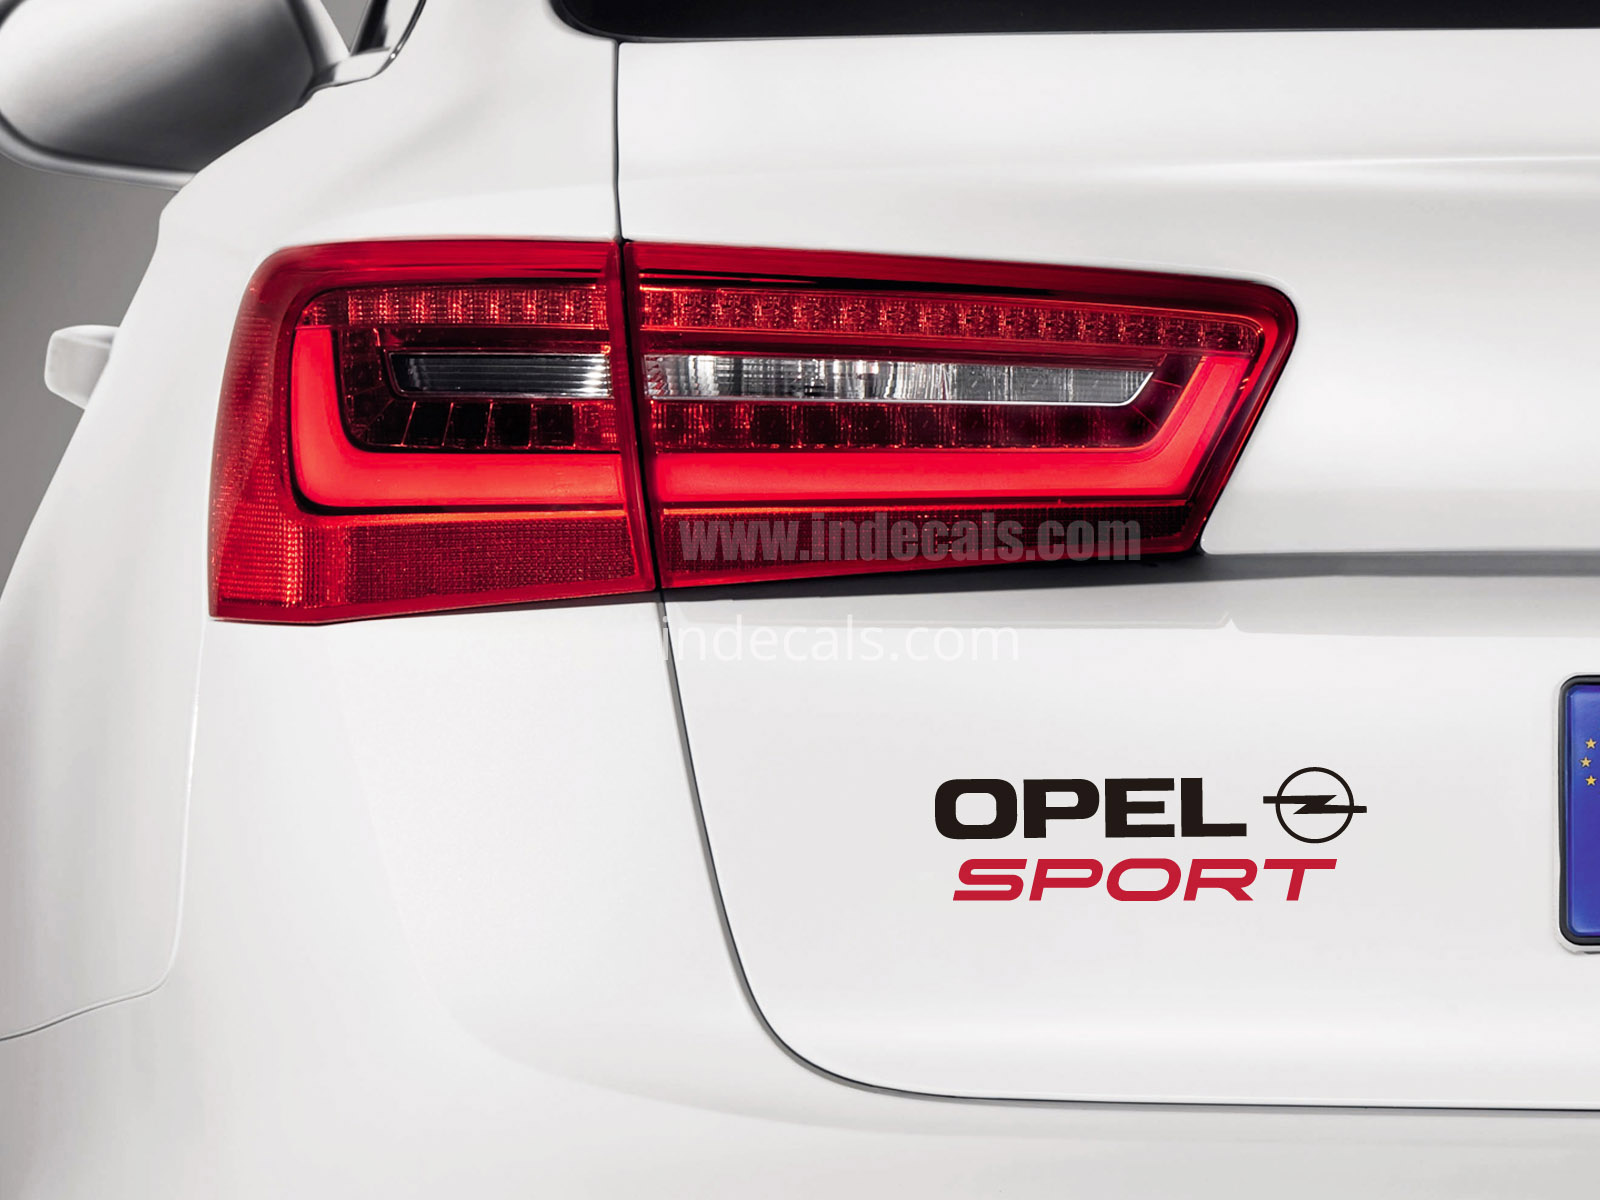 1 x Opel Sports Sticker for Trunk - Black & Red